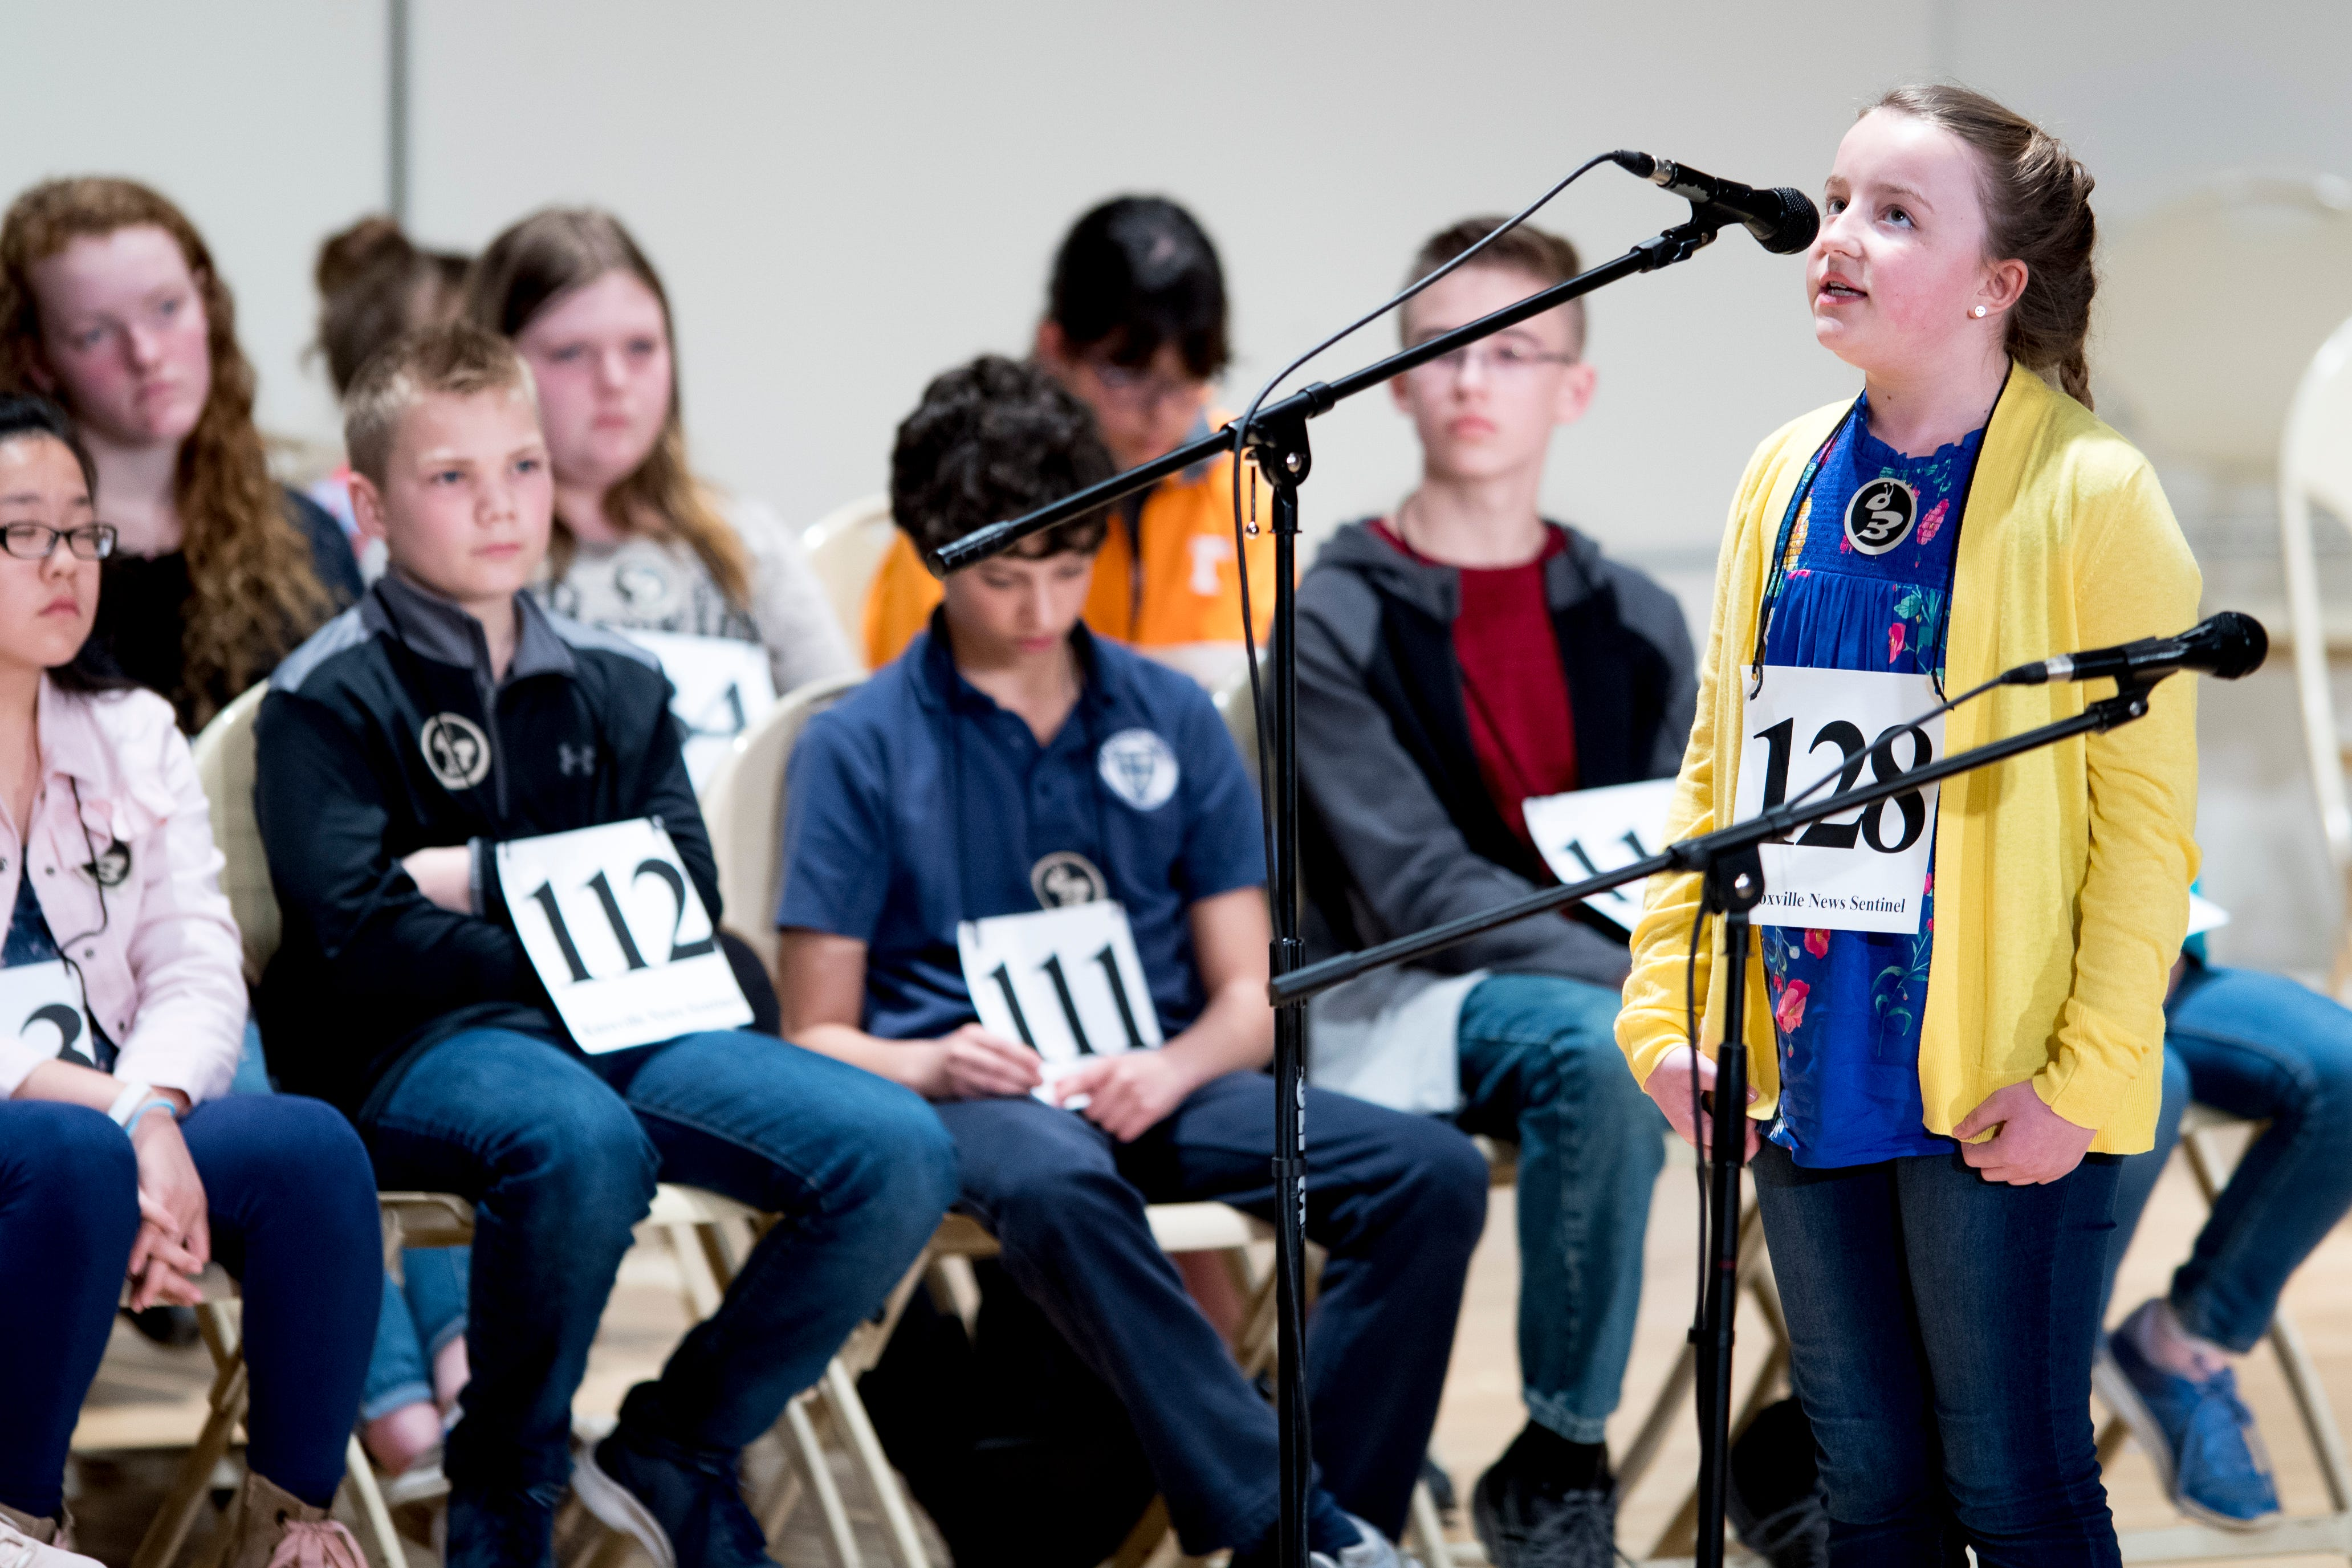 Final Round Of News Sentinel Spelling Bee